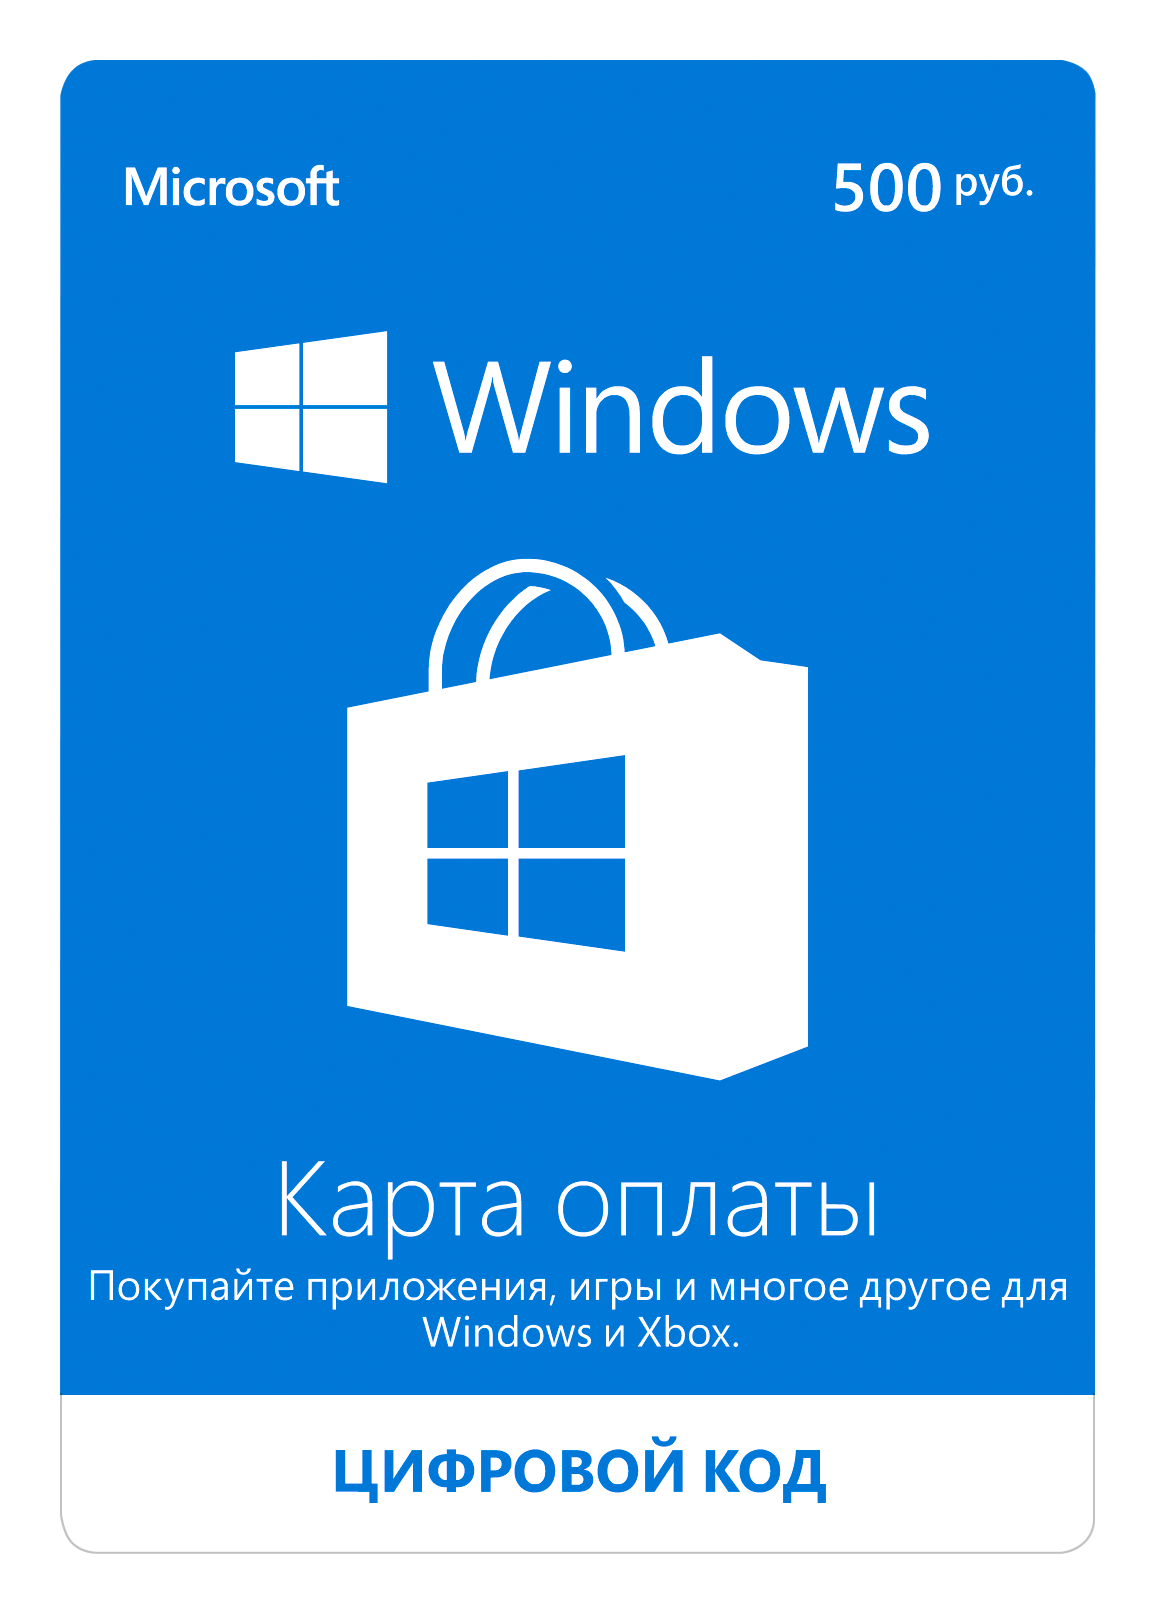 Payment card Windows 500 RUB (Store Windows/Xbox Live)